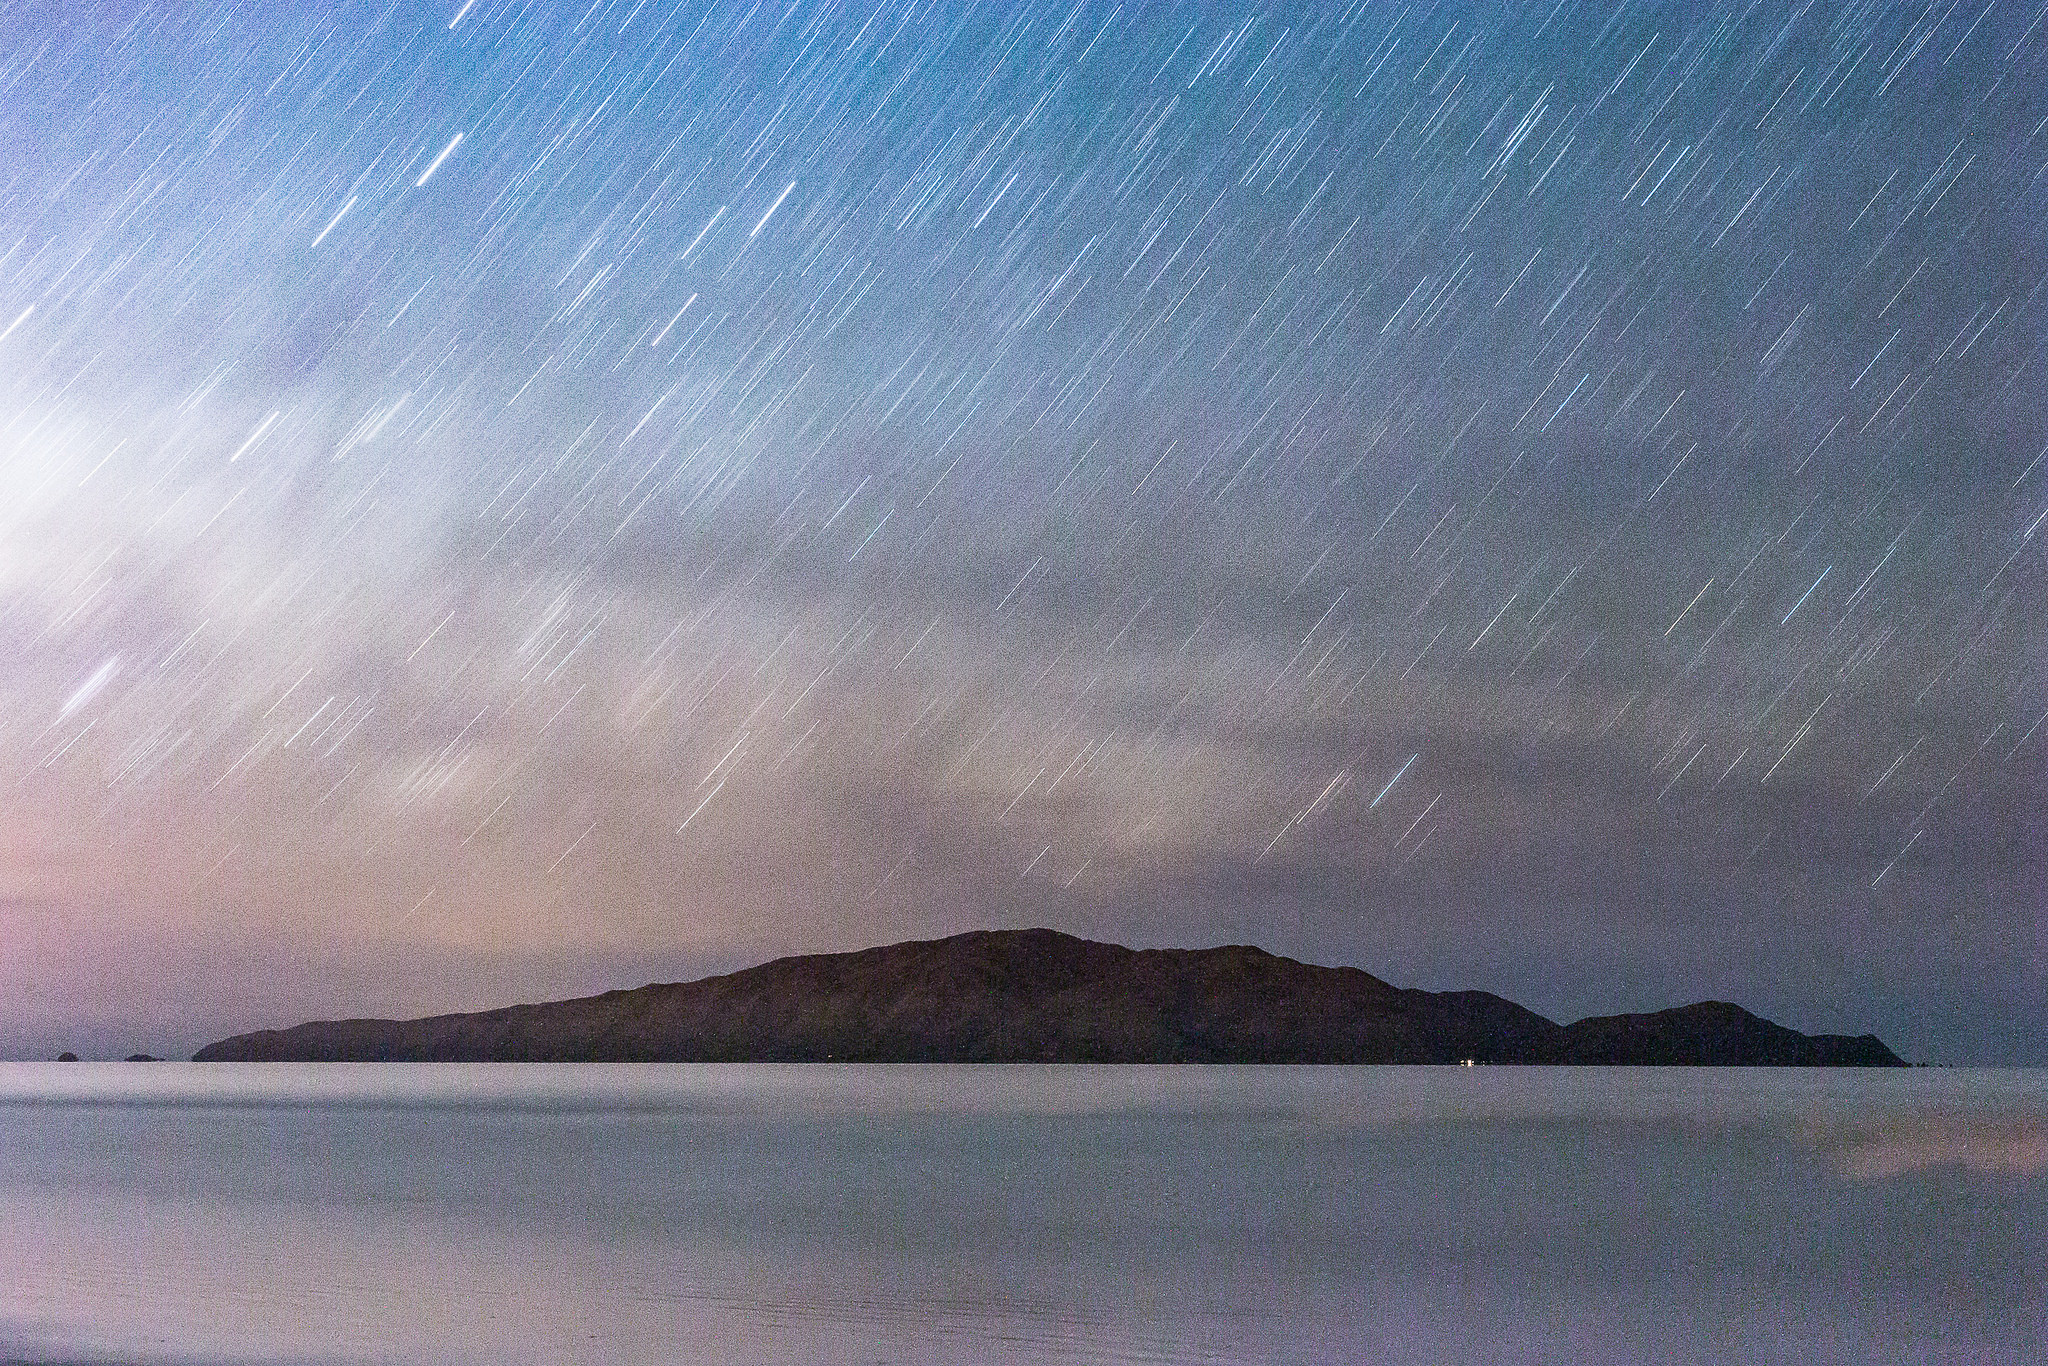 A longer exposure over Kapiti Island